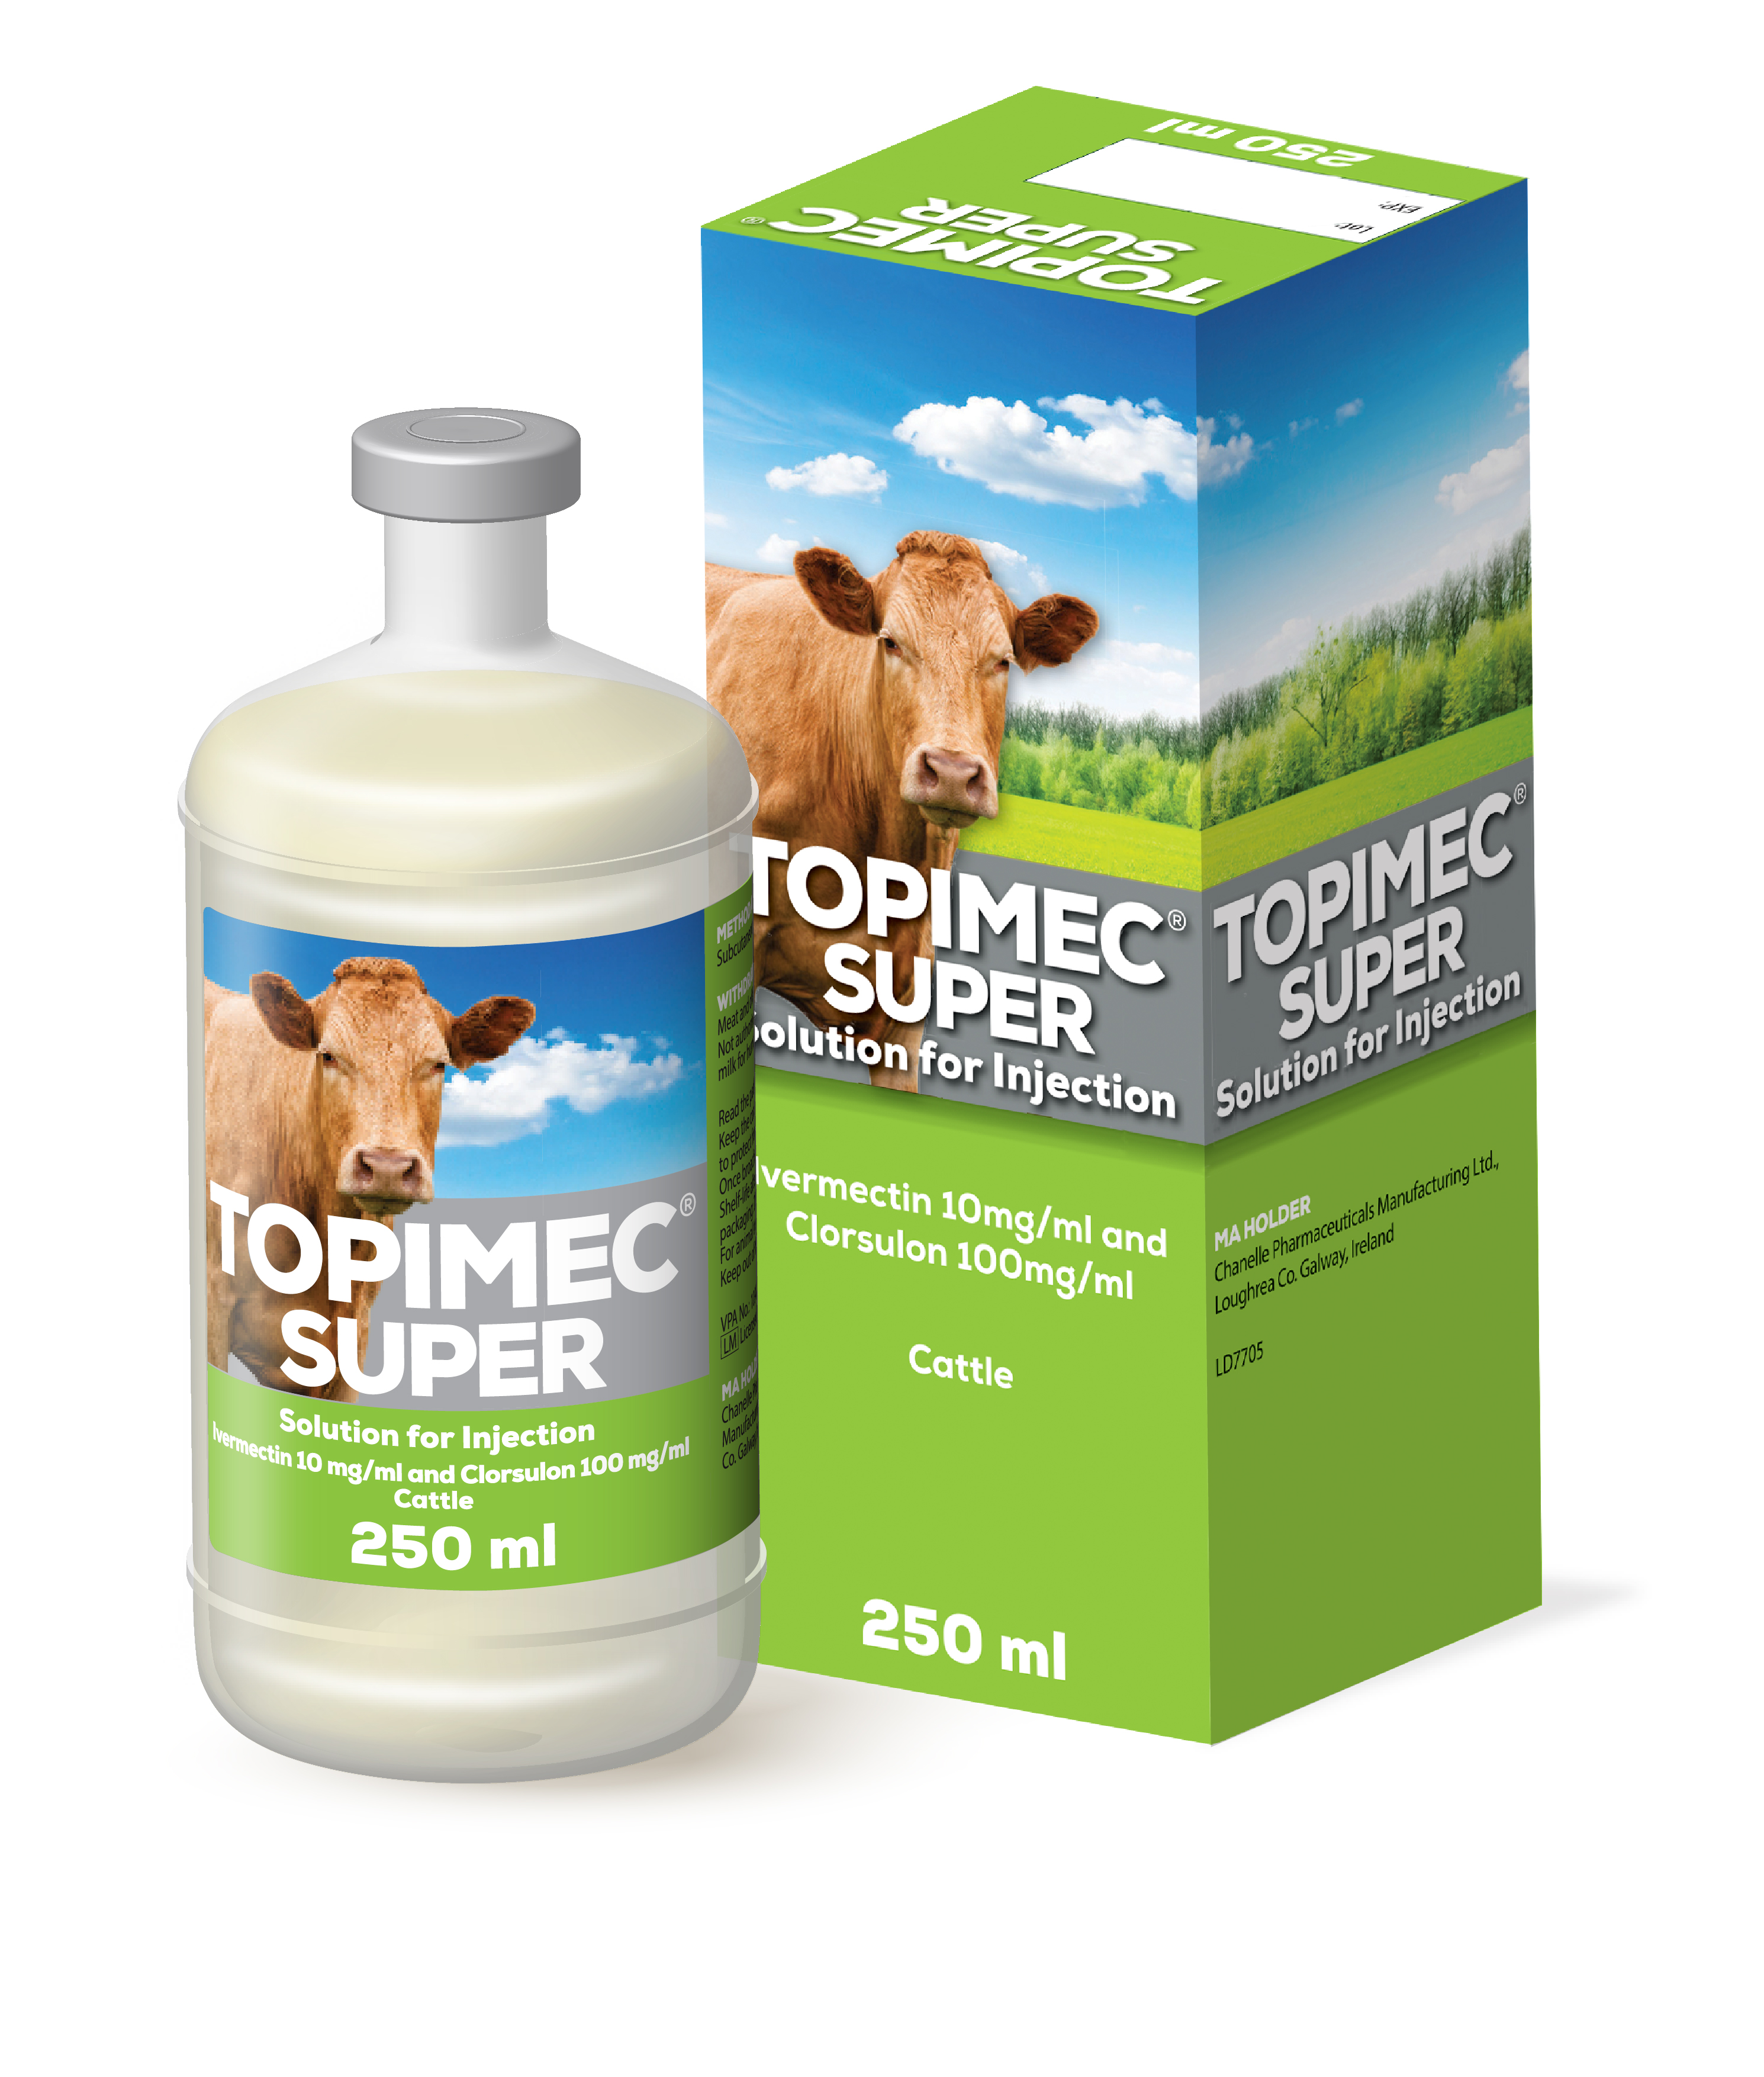 Topimec Super